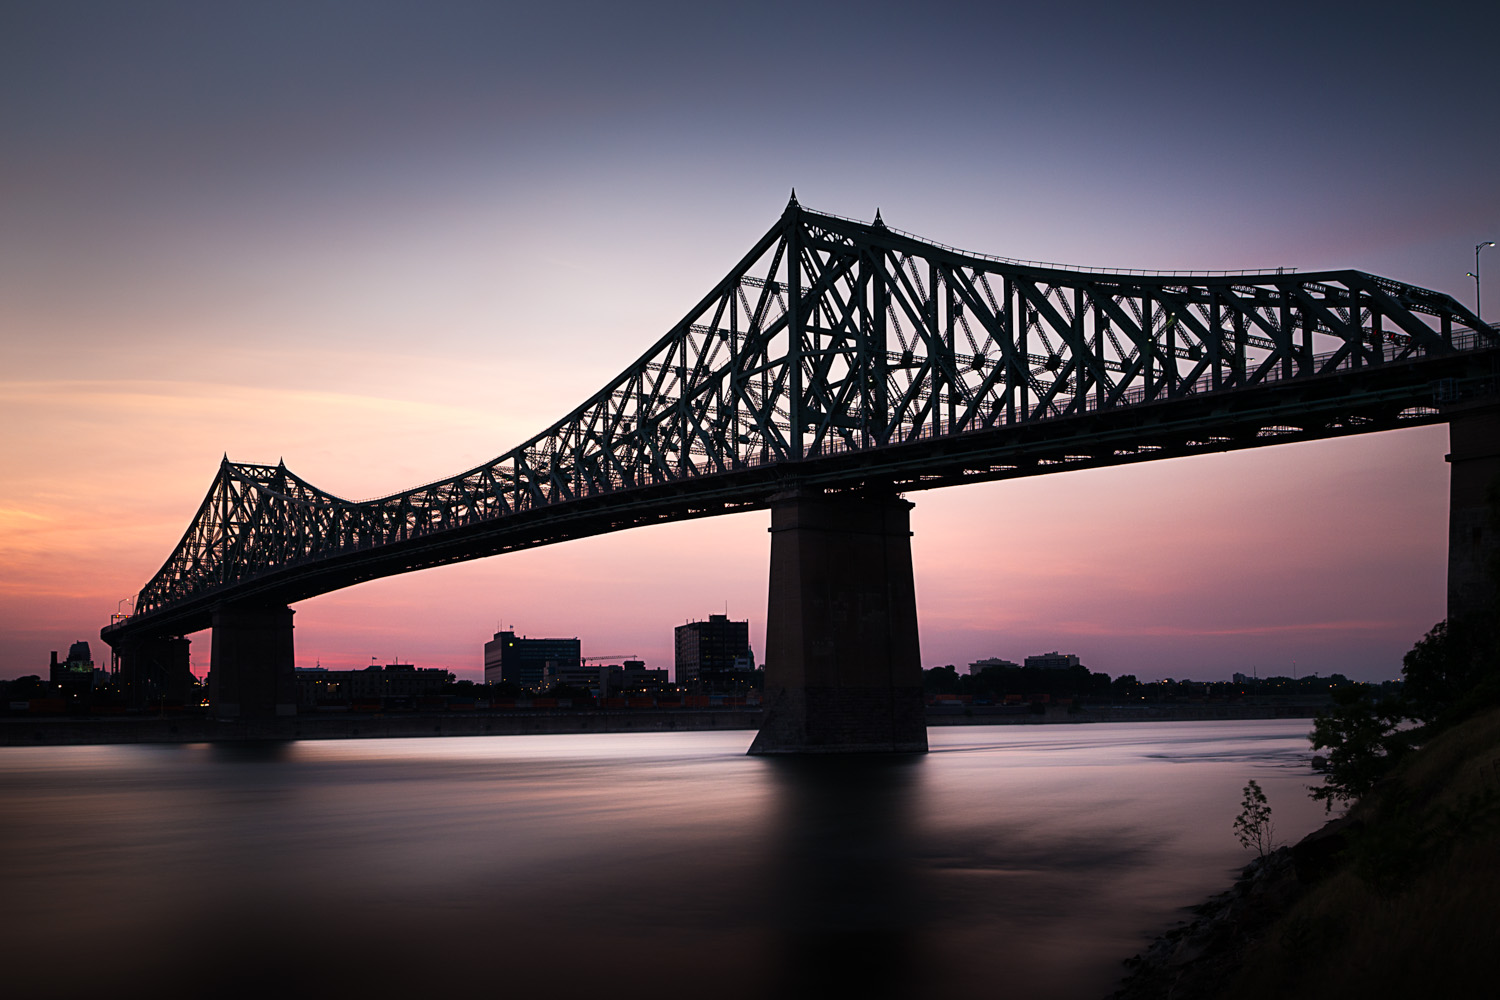 Jaques Cartier bridge